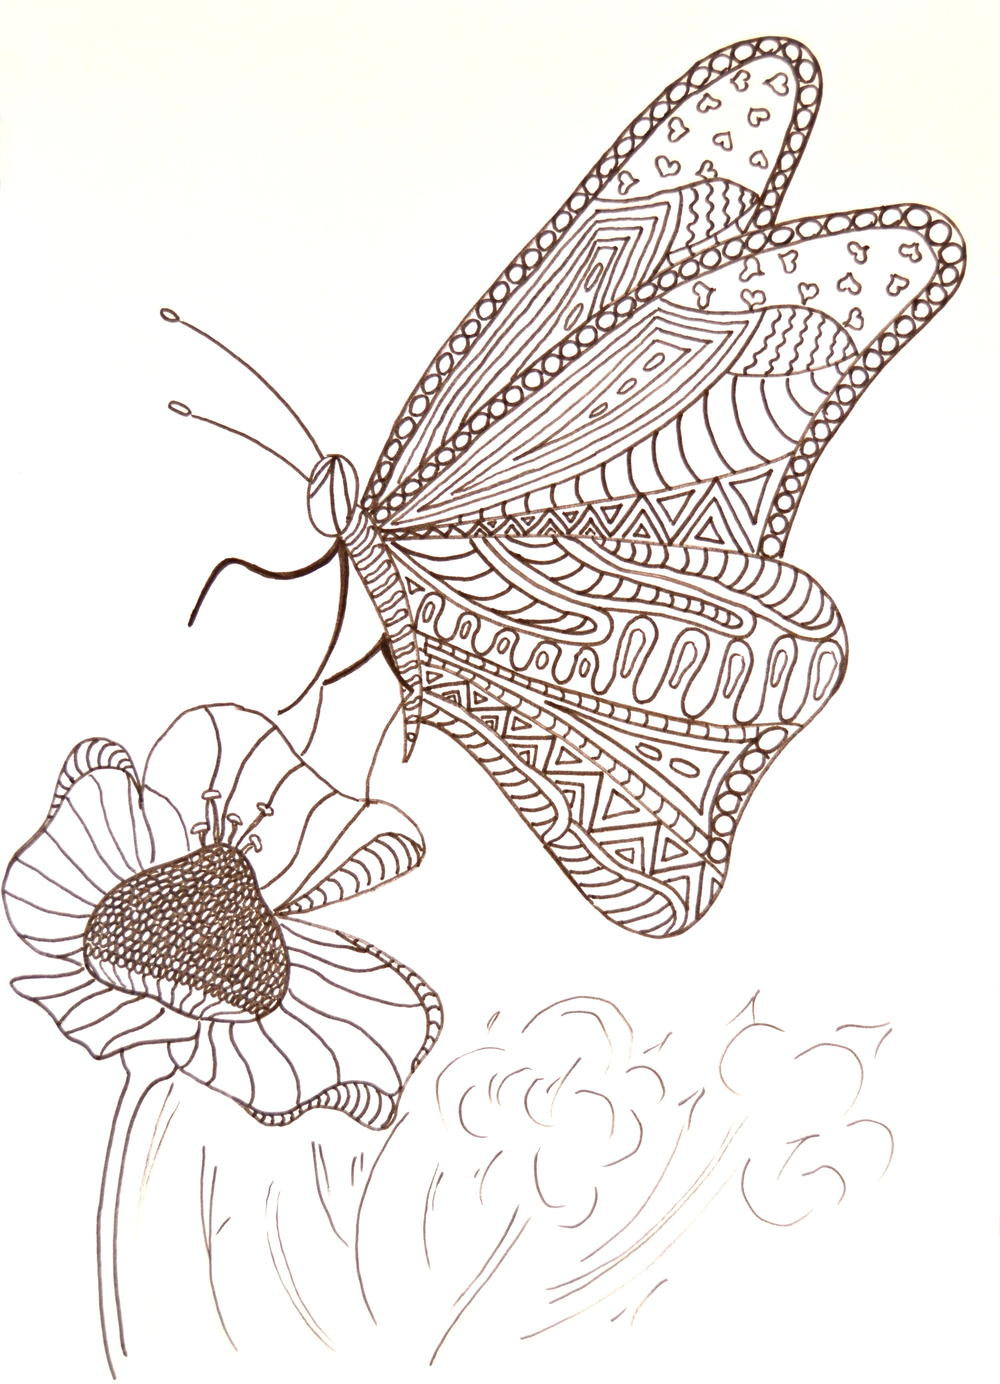 Hungry butterfly adult coloring page for Coloring pages of butterflies for adults